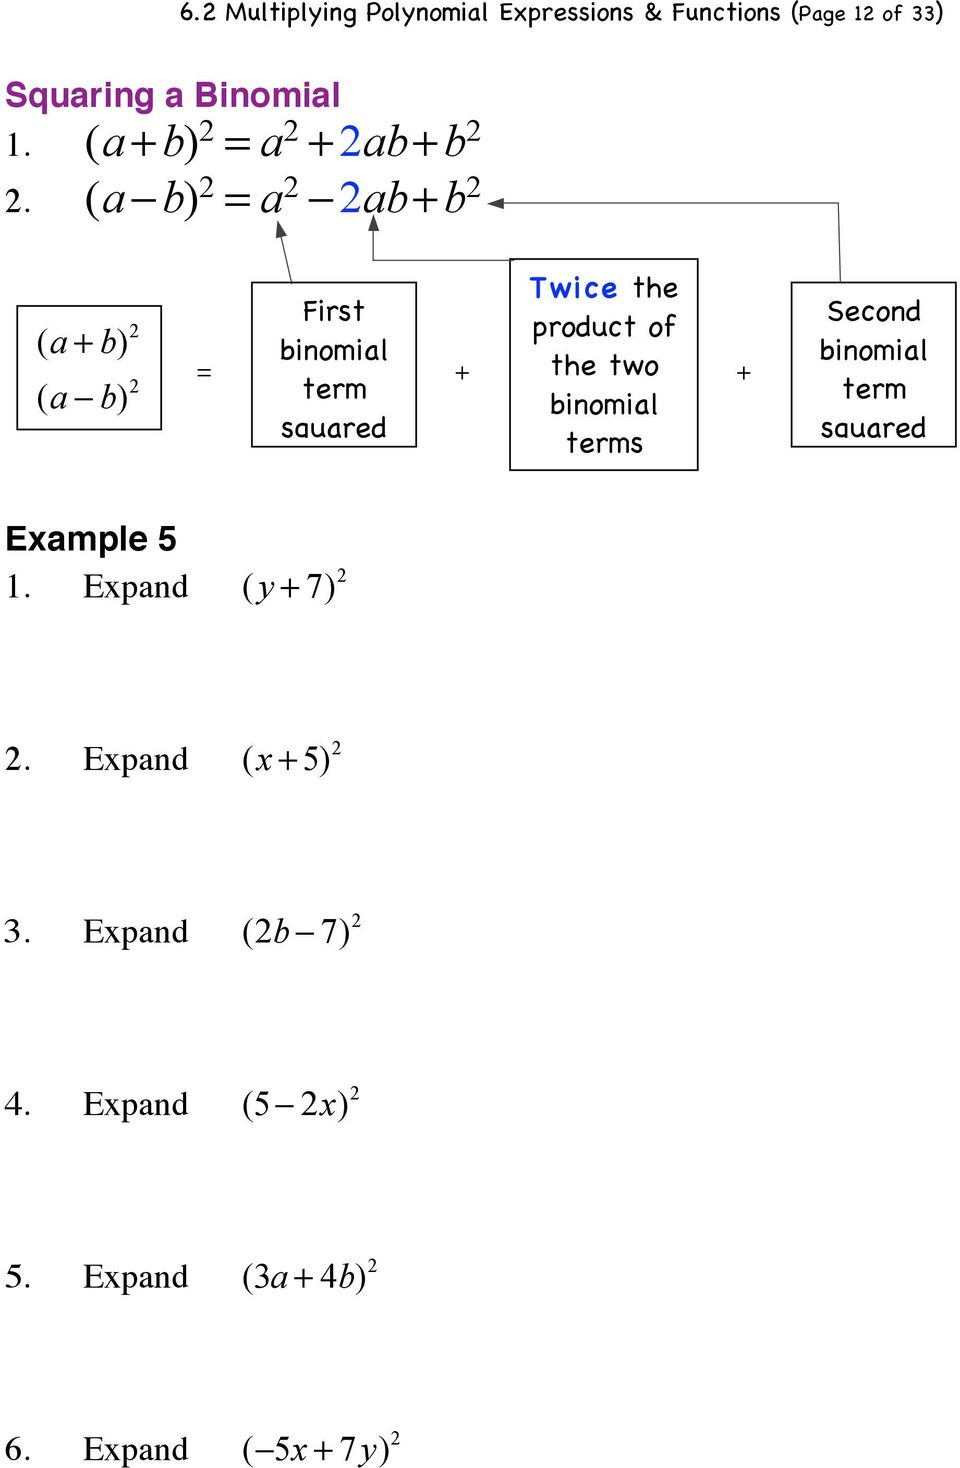 b) 2 = First binomial term squared + Twice the product of the two binomial terms + Second binomial